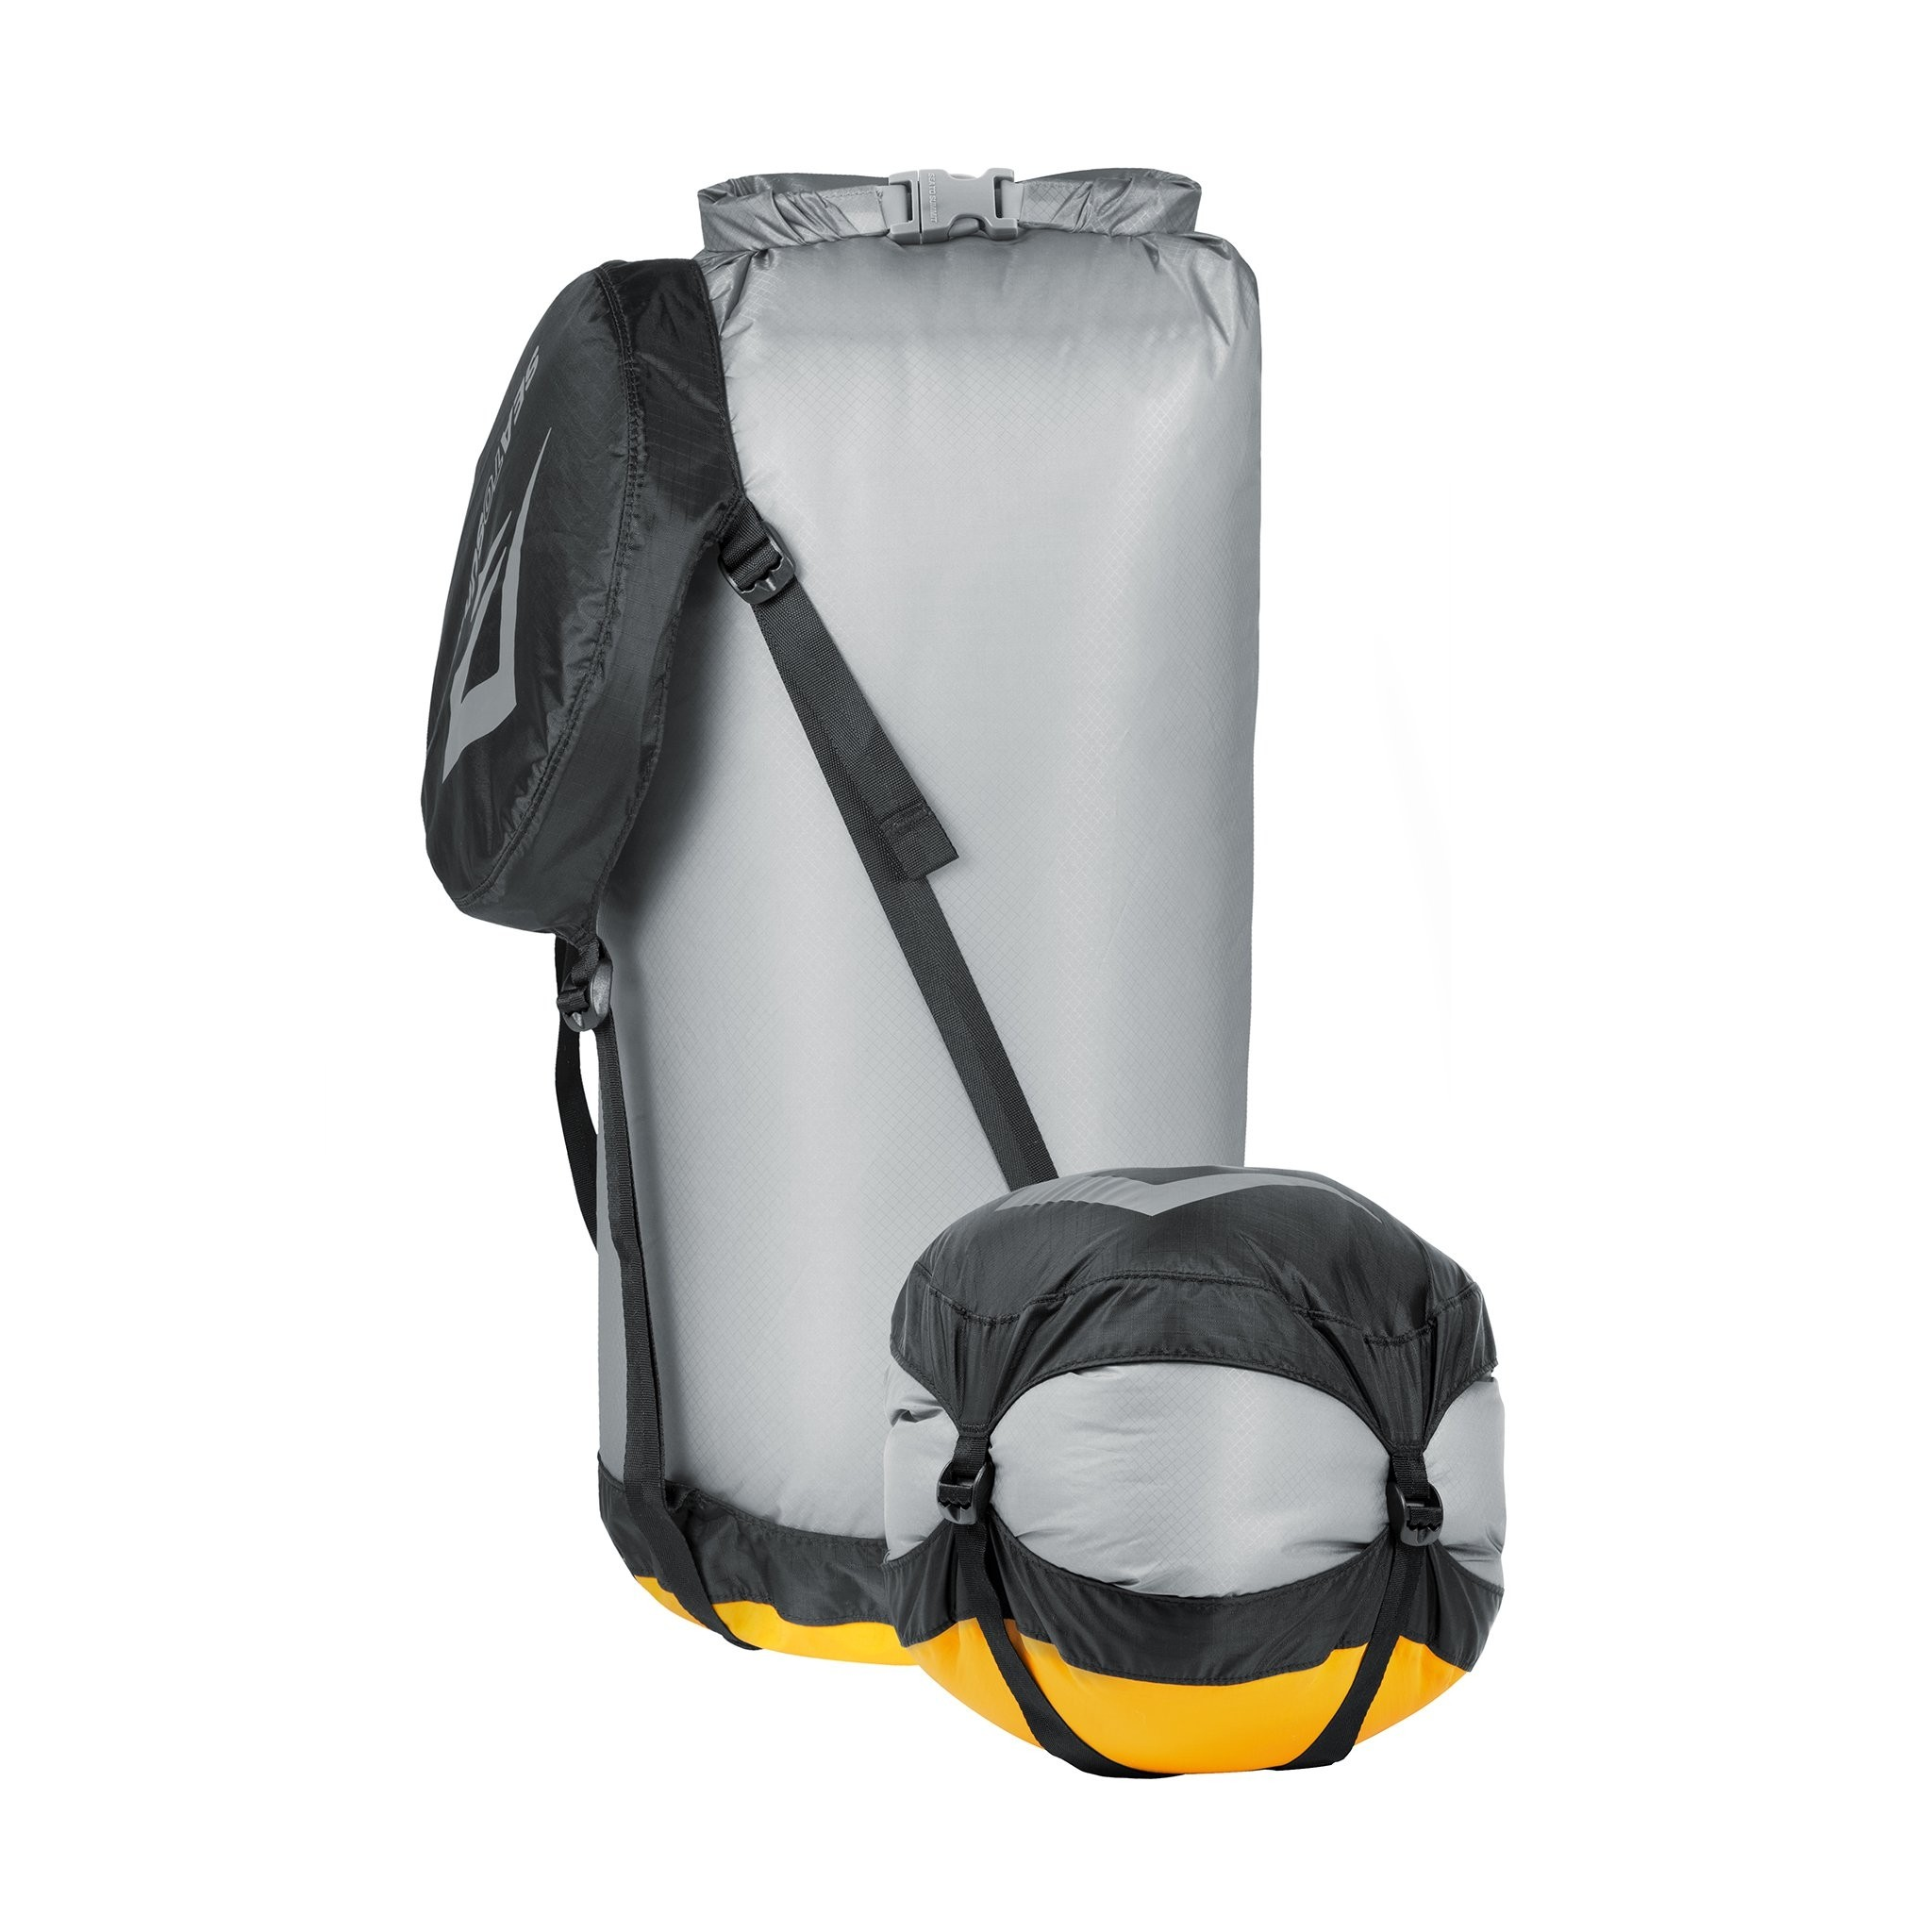 Sea to Summit Ultra-Sil eVent Dry Compression Sack M - 14L